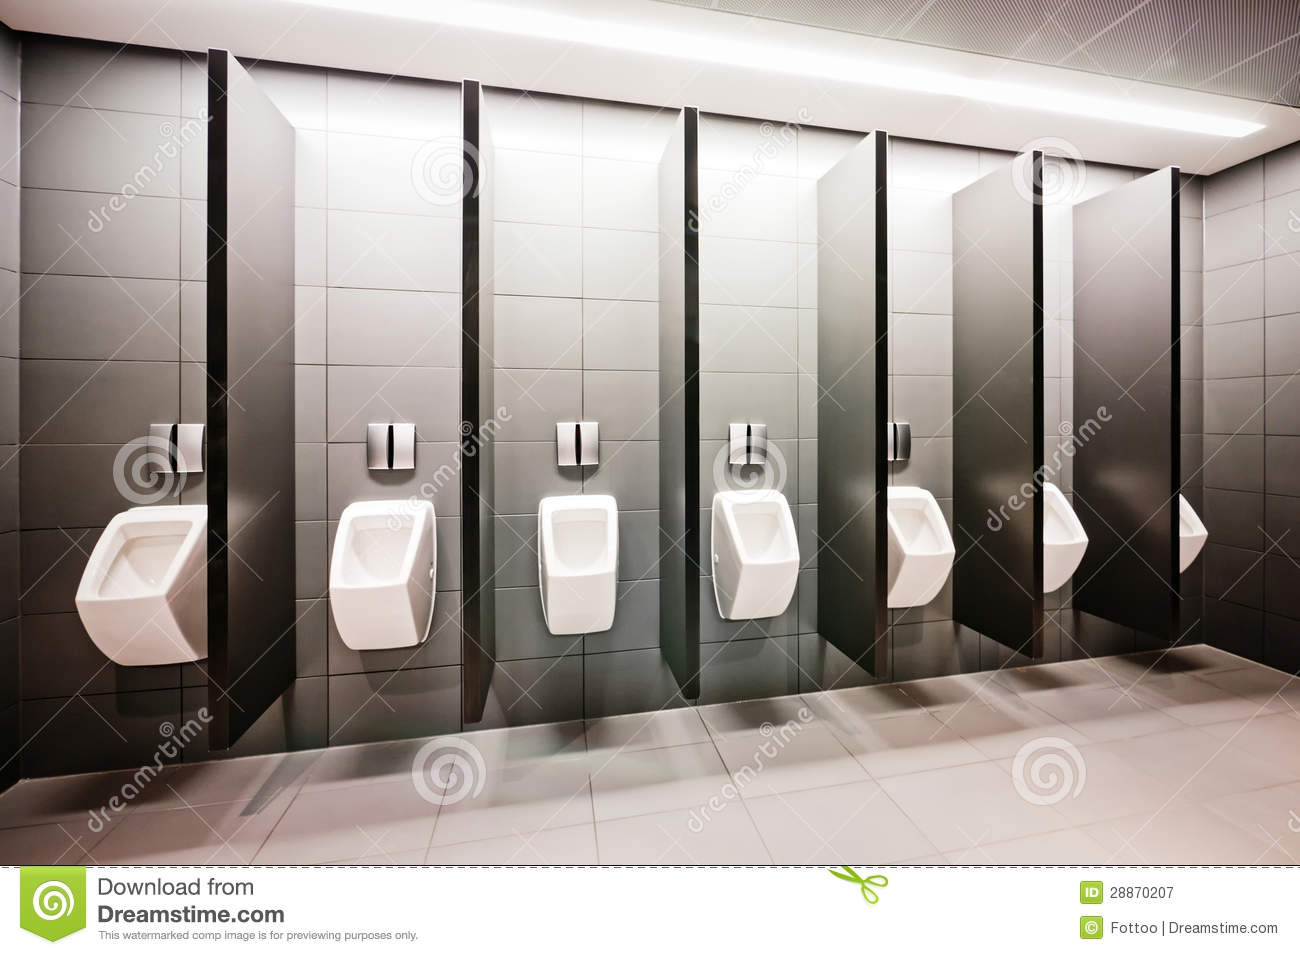 Public Restroom Stock Image Image Of Objects Floor